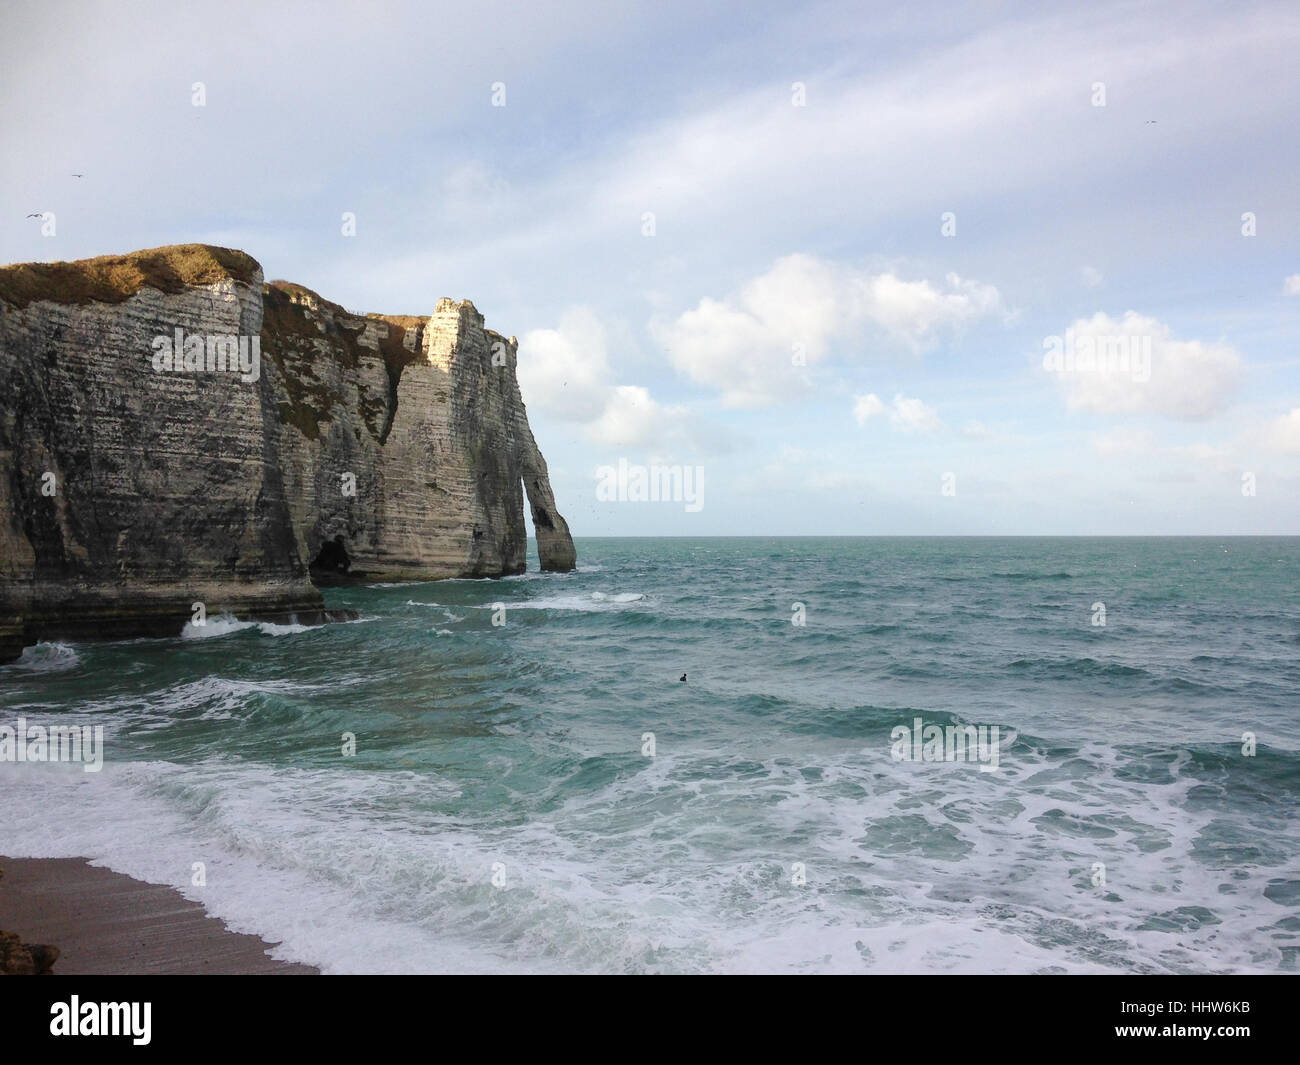 View on Falaise d'Etretat with surfer in the water Stock Photo